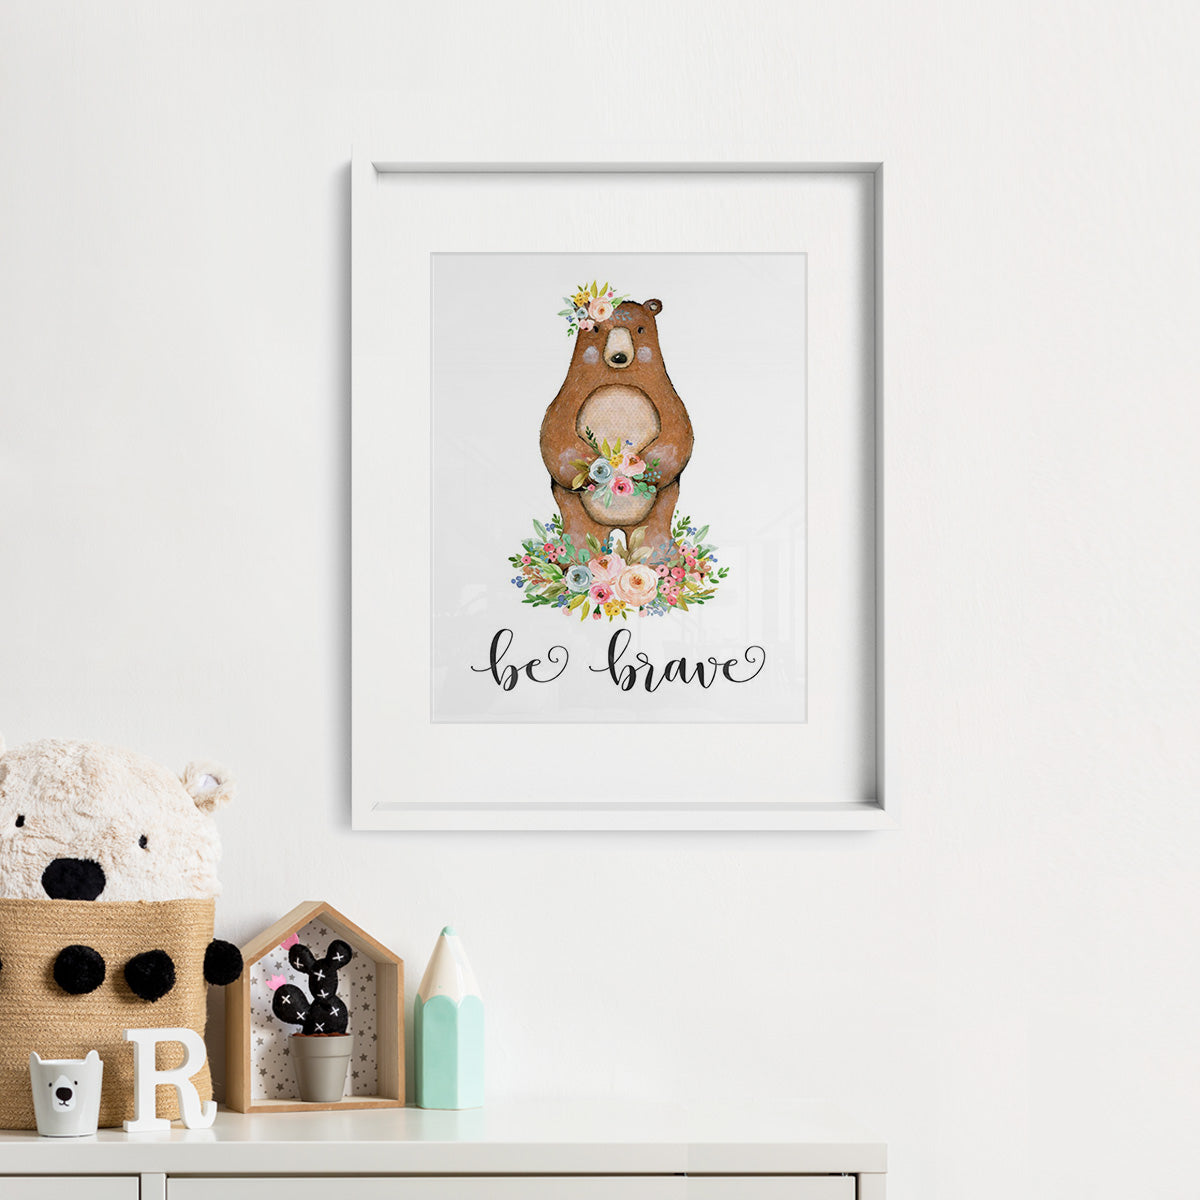 Woodland Animals Bear Print Framed Photo from an Etsy Digital Download